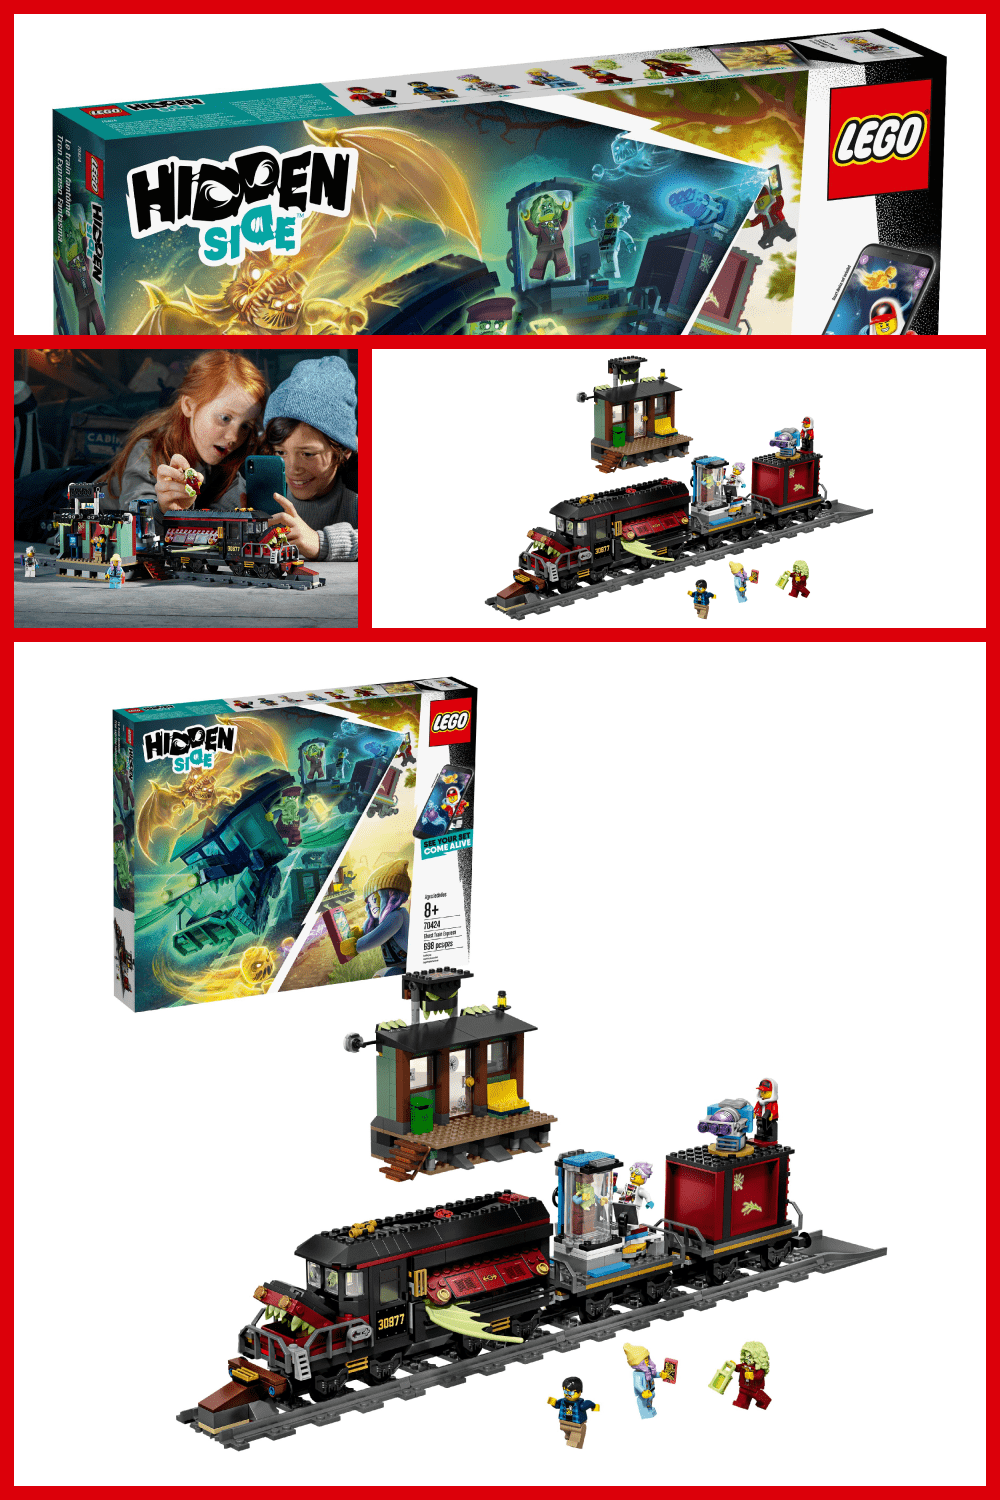 Lego is a classic in the toy category. Here you can build a city and become the owner of a railway station.